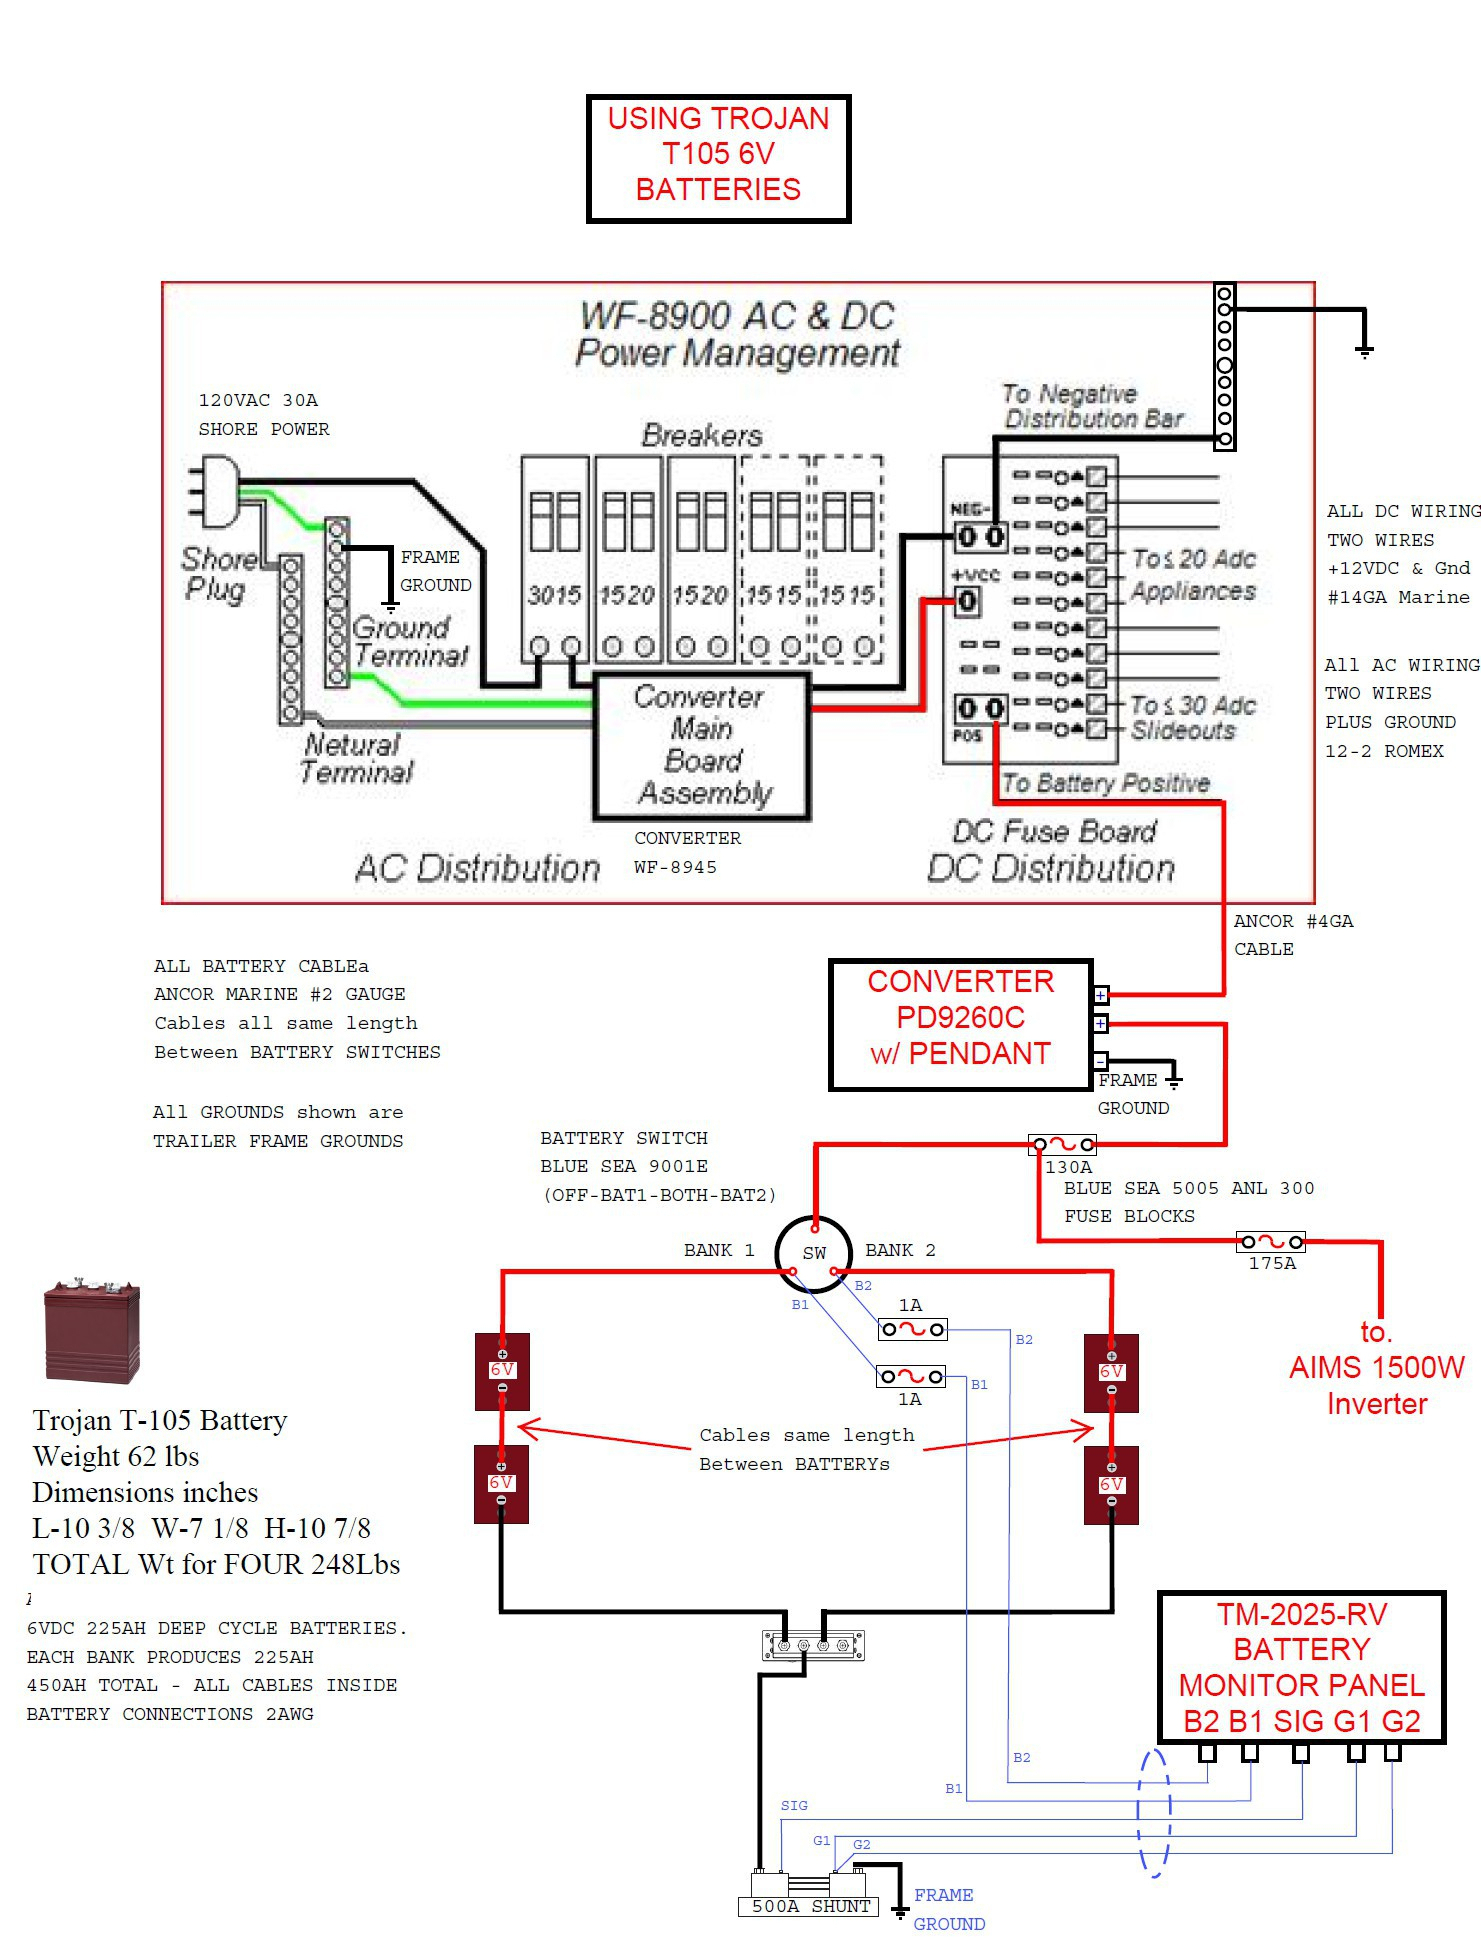 Rv Holding Tank Monitor Panel Wiring Diagram | Wiring Diagram - Rv Holding Tank Sensor Wiring Diagram